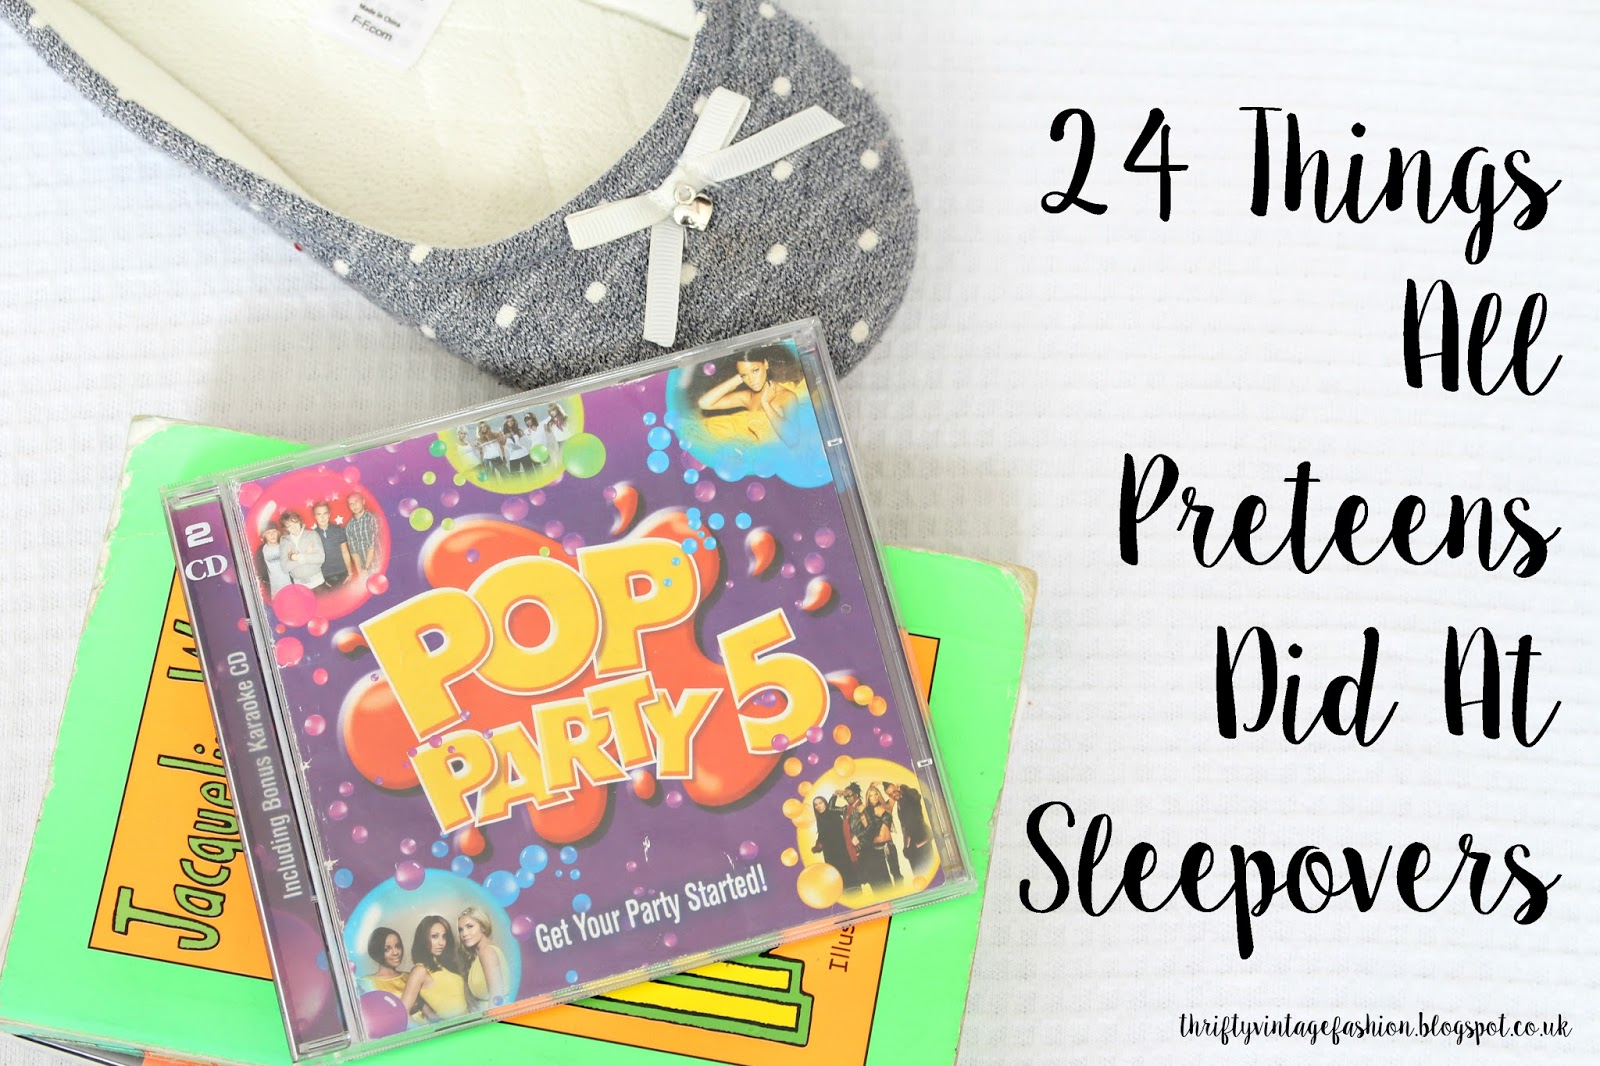 24 Things All Preteens Did At Sleepovers lifestyle blogger UK buzzfeed